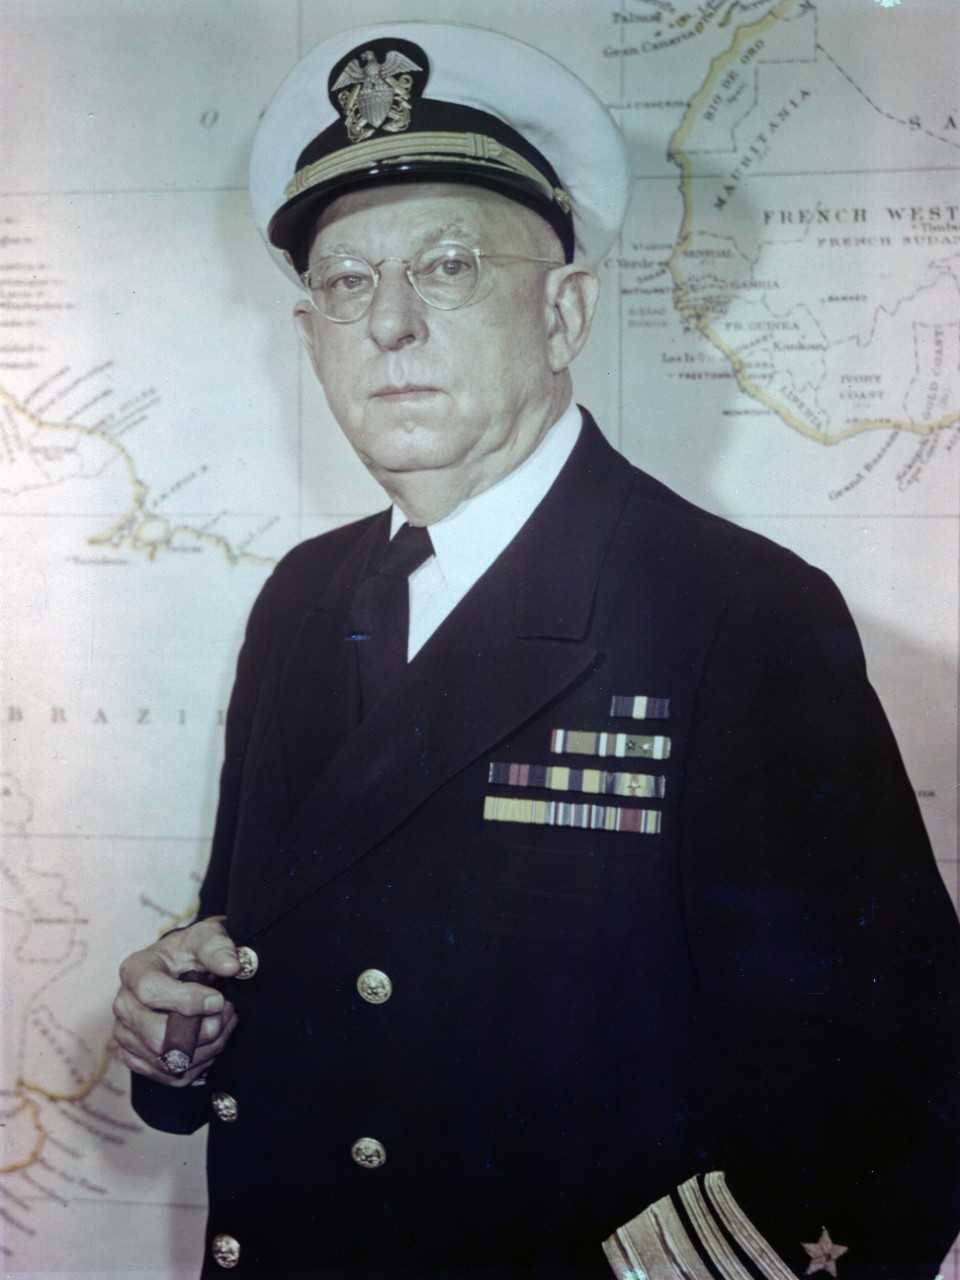 Approximately 300 photos, postcards, and negatives from the career of Vice Admiral Harold Bowen Sr. (1883-1965), who served as head of the Naval Research Laboratory and the Office of Naval Research. Originally donated by Bowen to the Naval Historical Foundation, and subsequently donated to the Naval History and Heritage Command. There are a few photos of his early life and career, but the preponderance of material is from his time as a flag officer. There are a significant number of posed portraits, as well as award ceremonies, meetings, and public events. A small selection of images show ship christenings and launchings. Some photos have been assigned NH numbers or were removed to the NH collection.